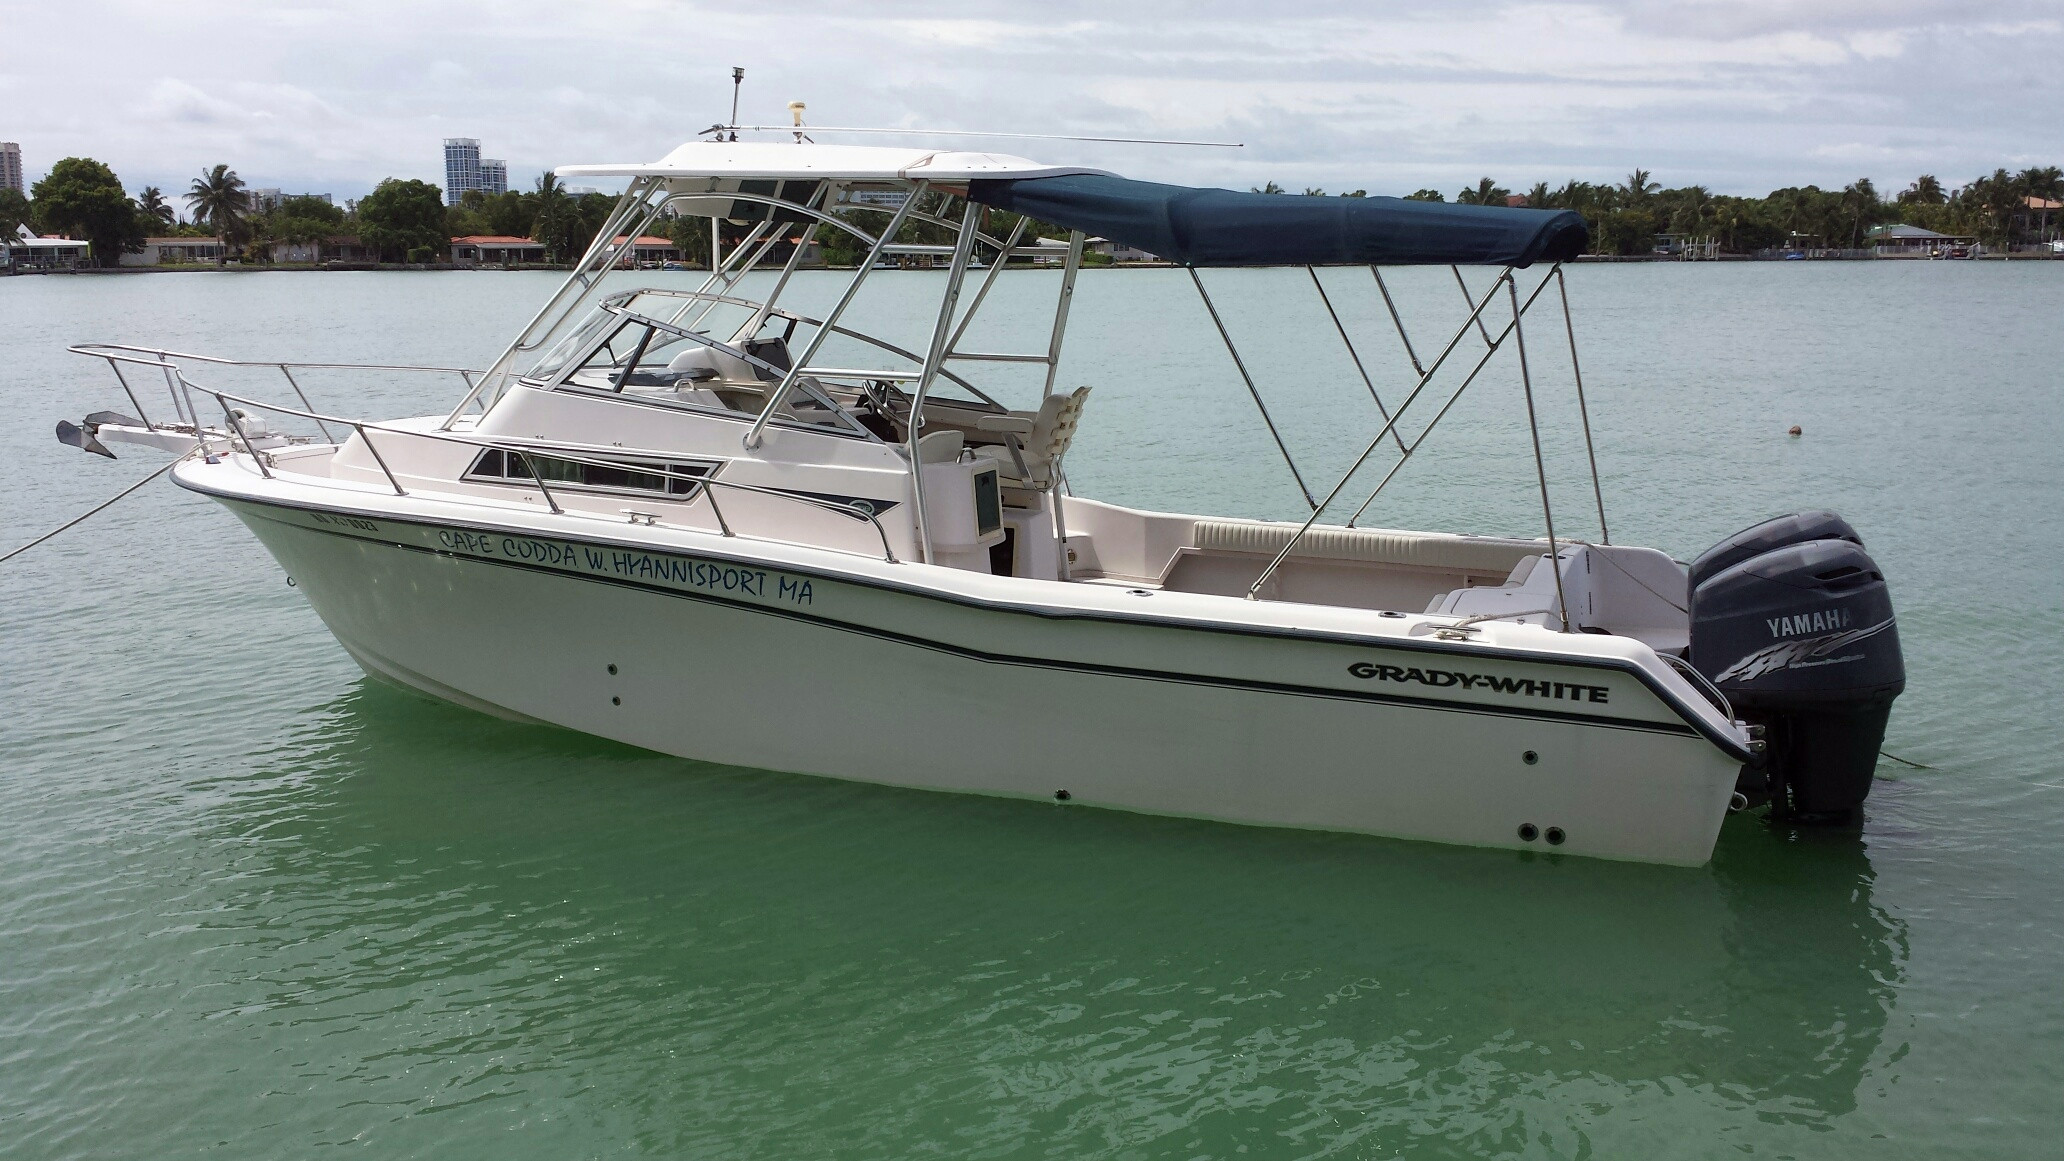 Grady white boats for sale for Grady white fishing boats